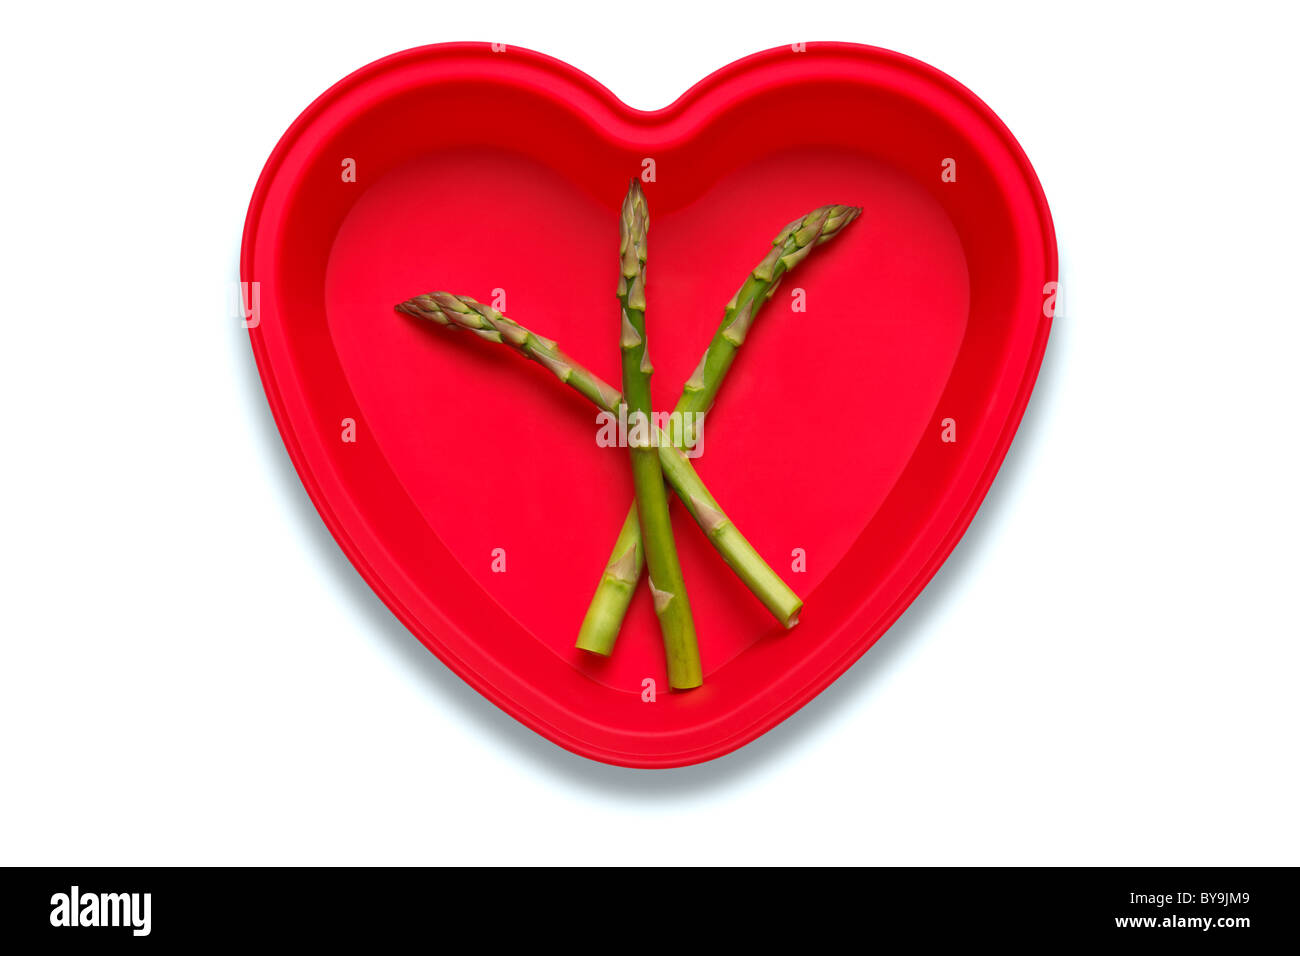 Conceptual photo of asparagus in a heart shaped dish to represent a love of the vegetable, isolated on a white background - Stock Image